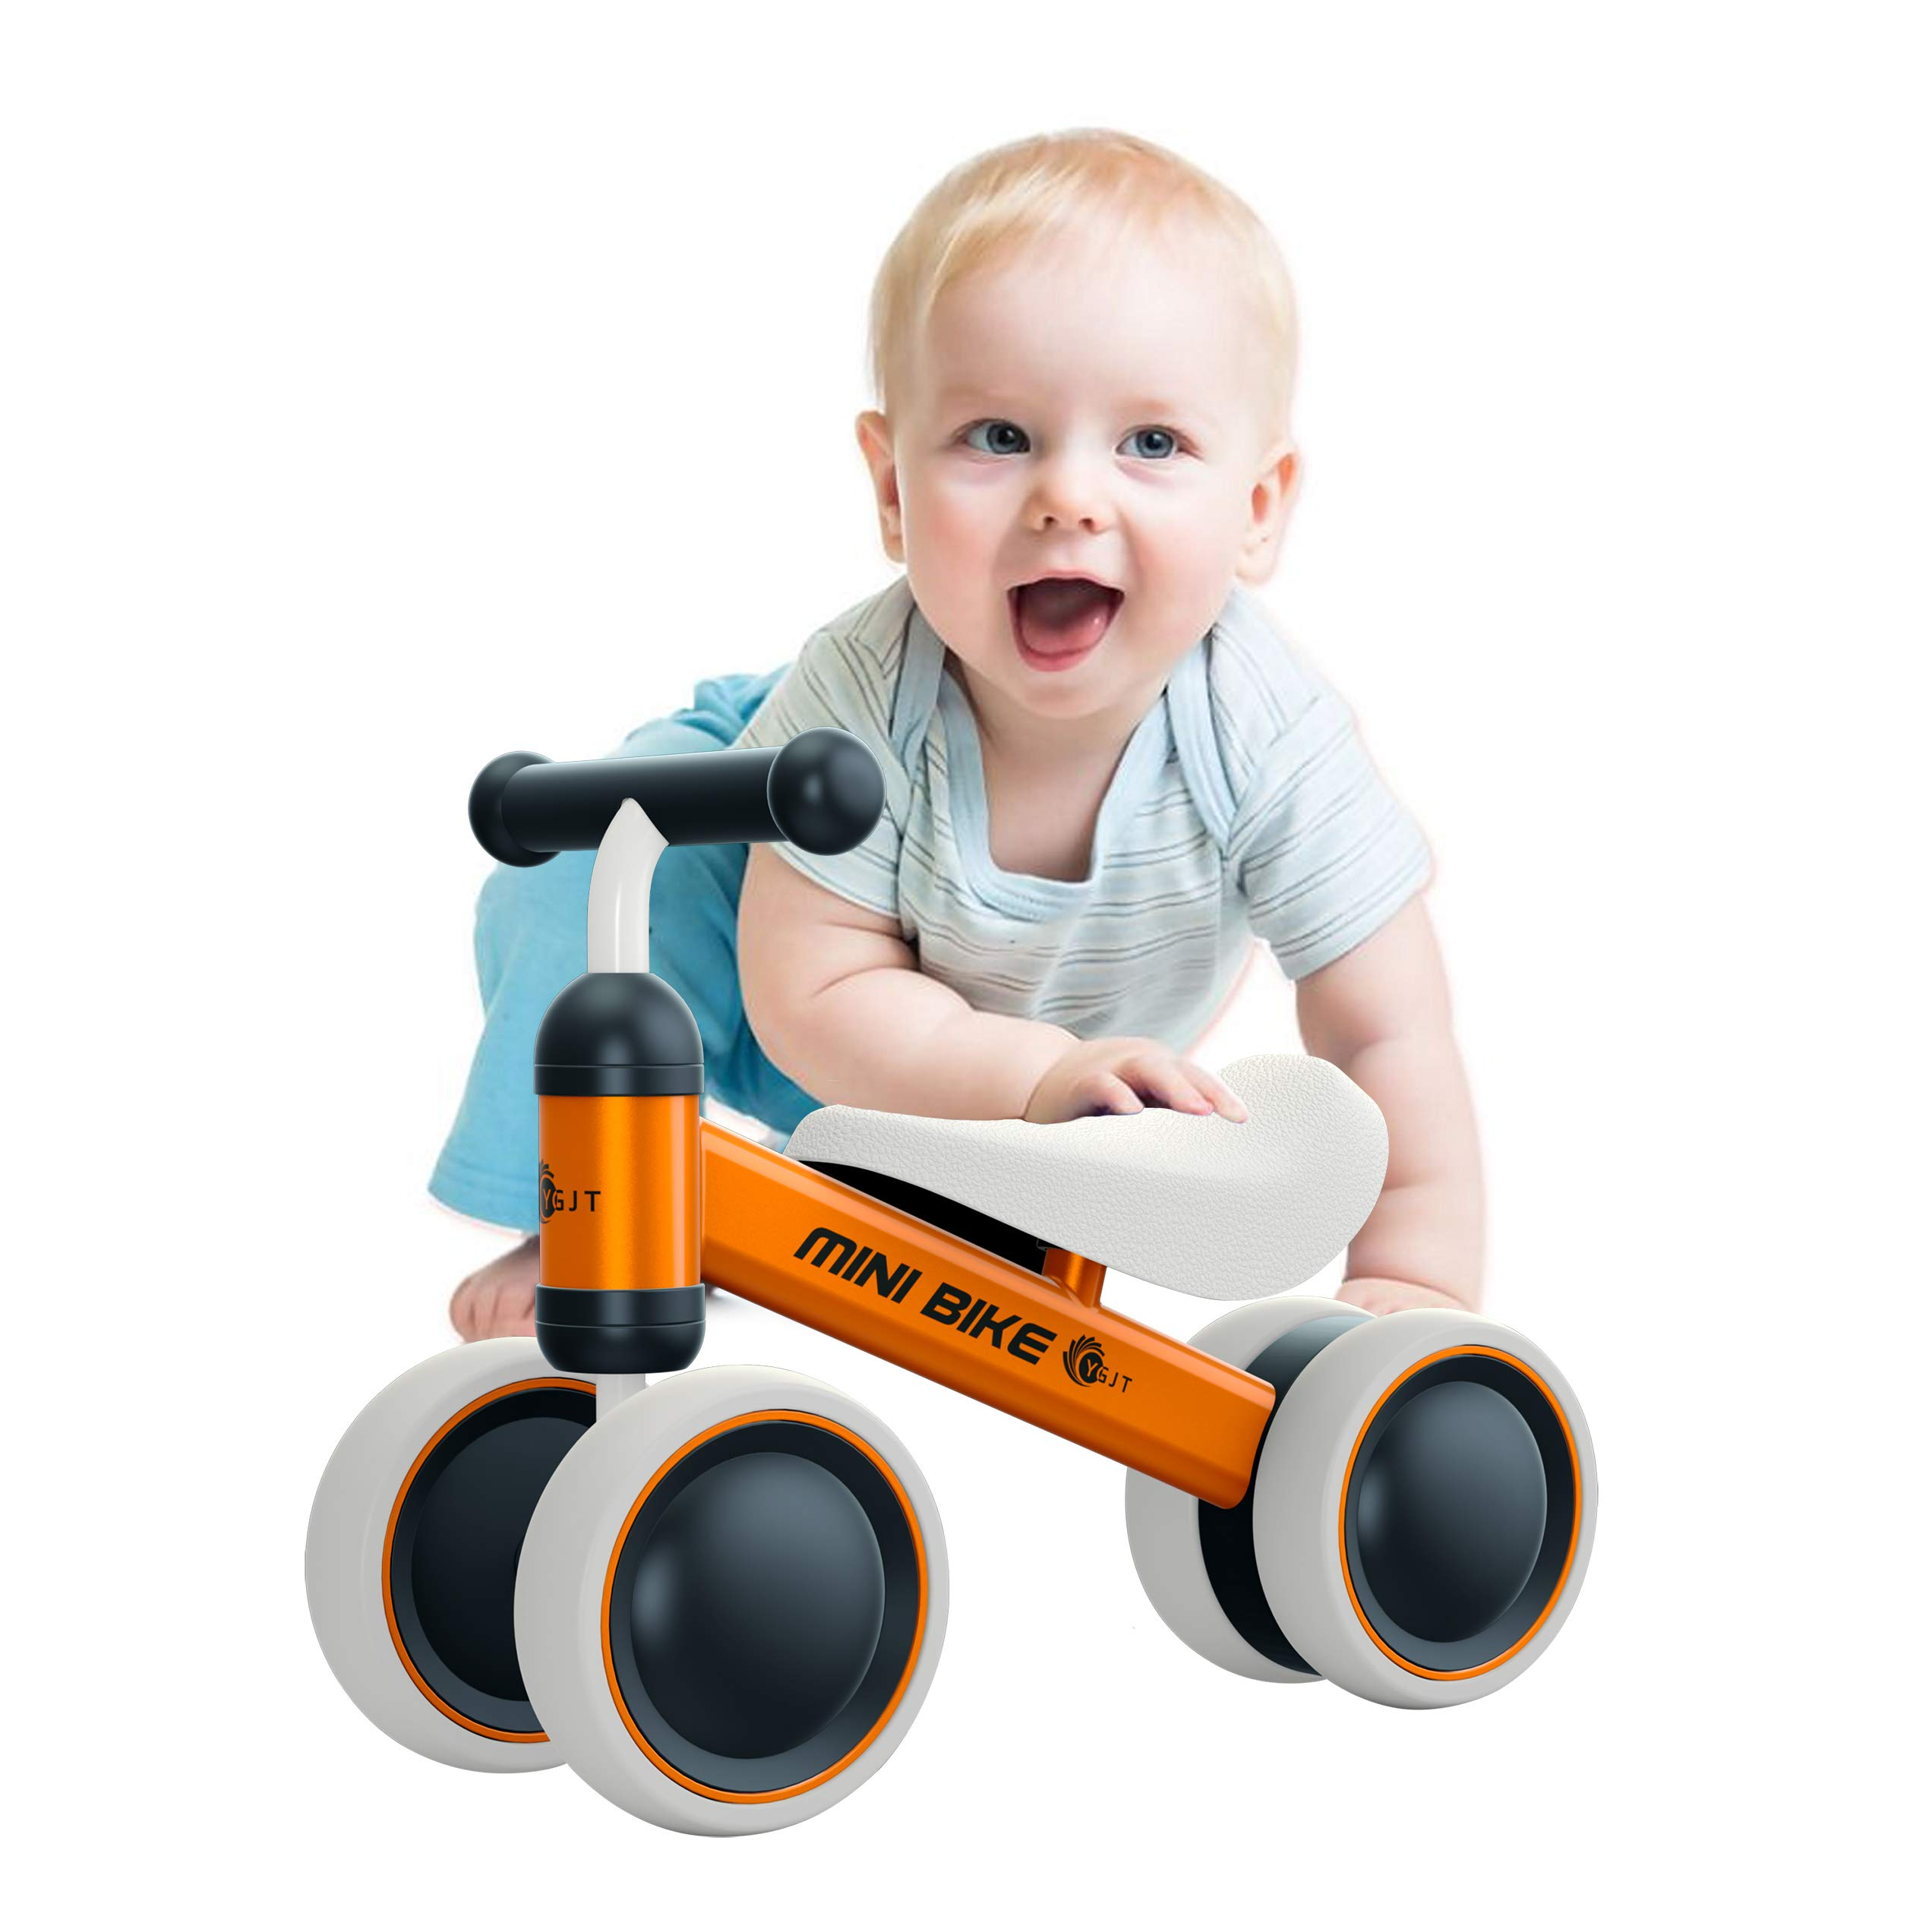 YGJT Baby Balance Bikes Bicycle Baby Walker Toys Rides for 1 Year Boys Girls 10 Months  sc 1 st  Amazon.com & Best First Birthday Gifts: Amazon.com